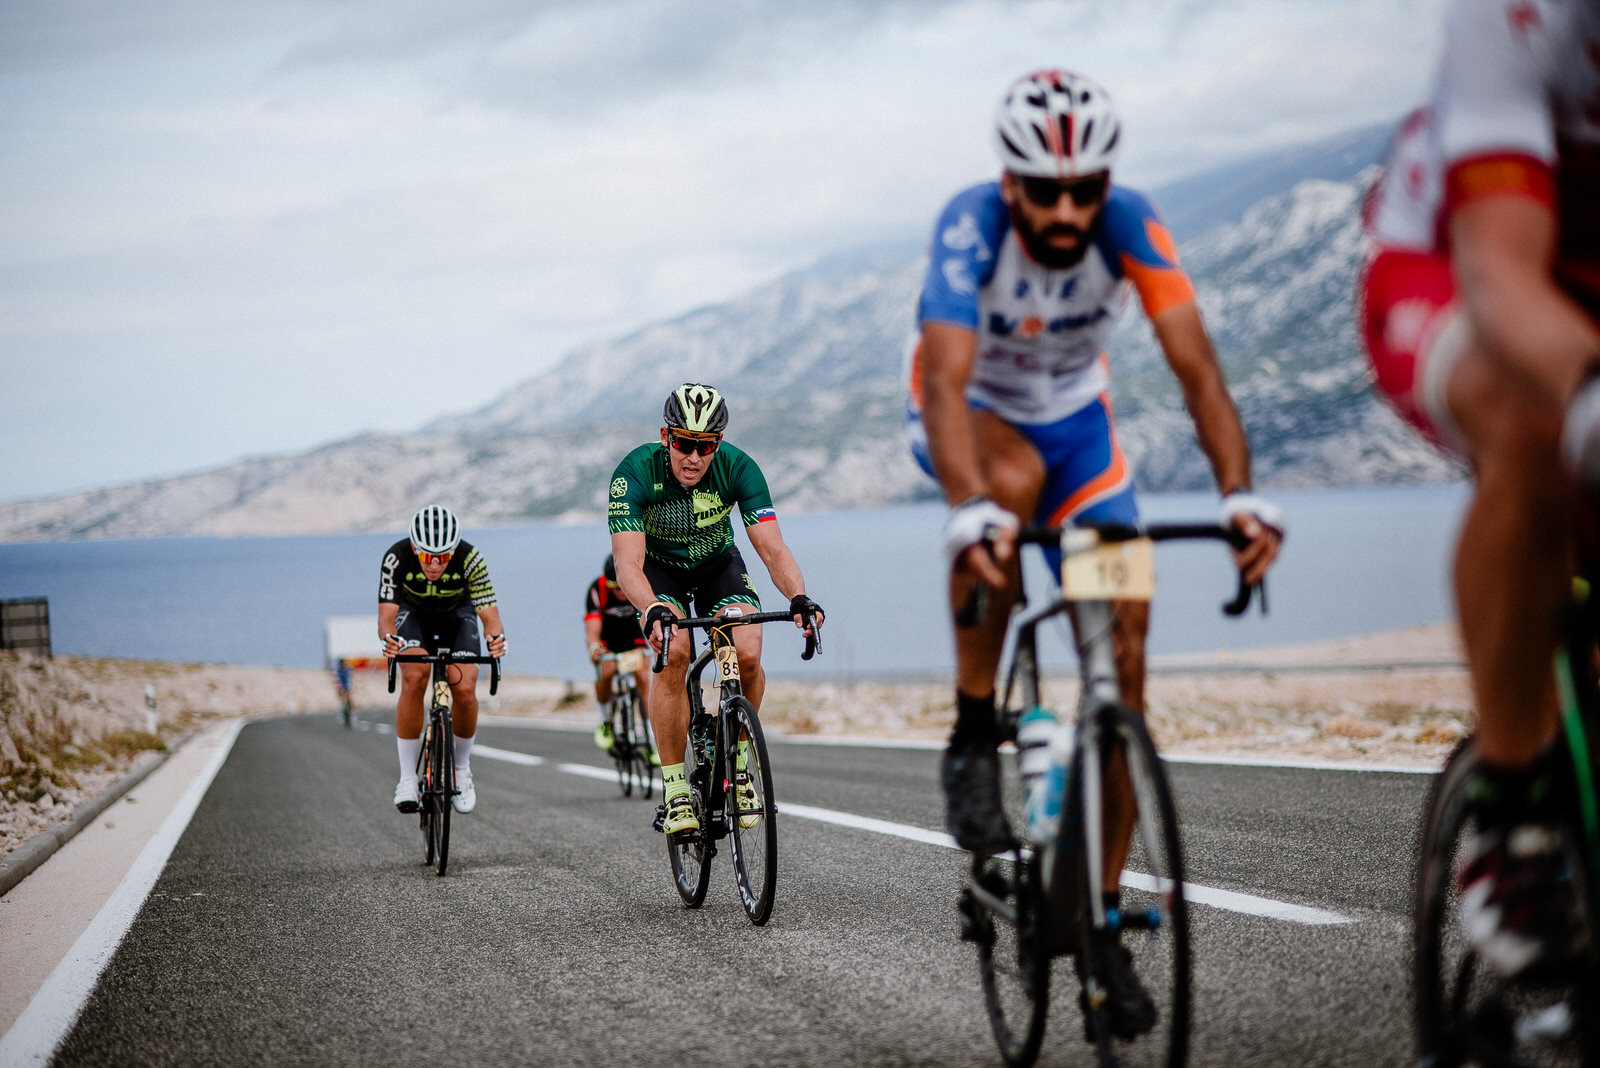 likaclub_Granfondo-Pag-–-Cycling-on-the-Moon_2019-25